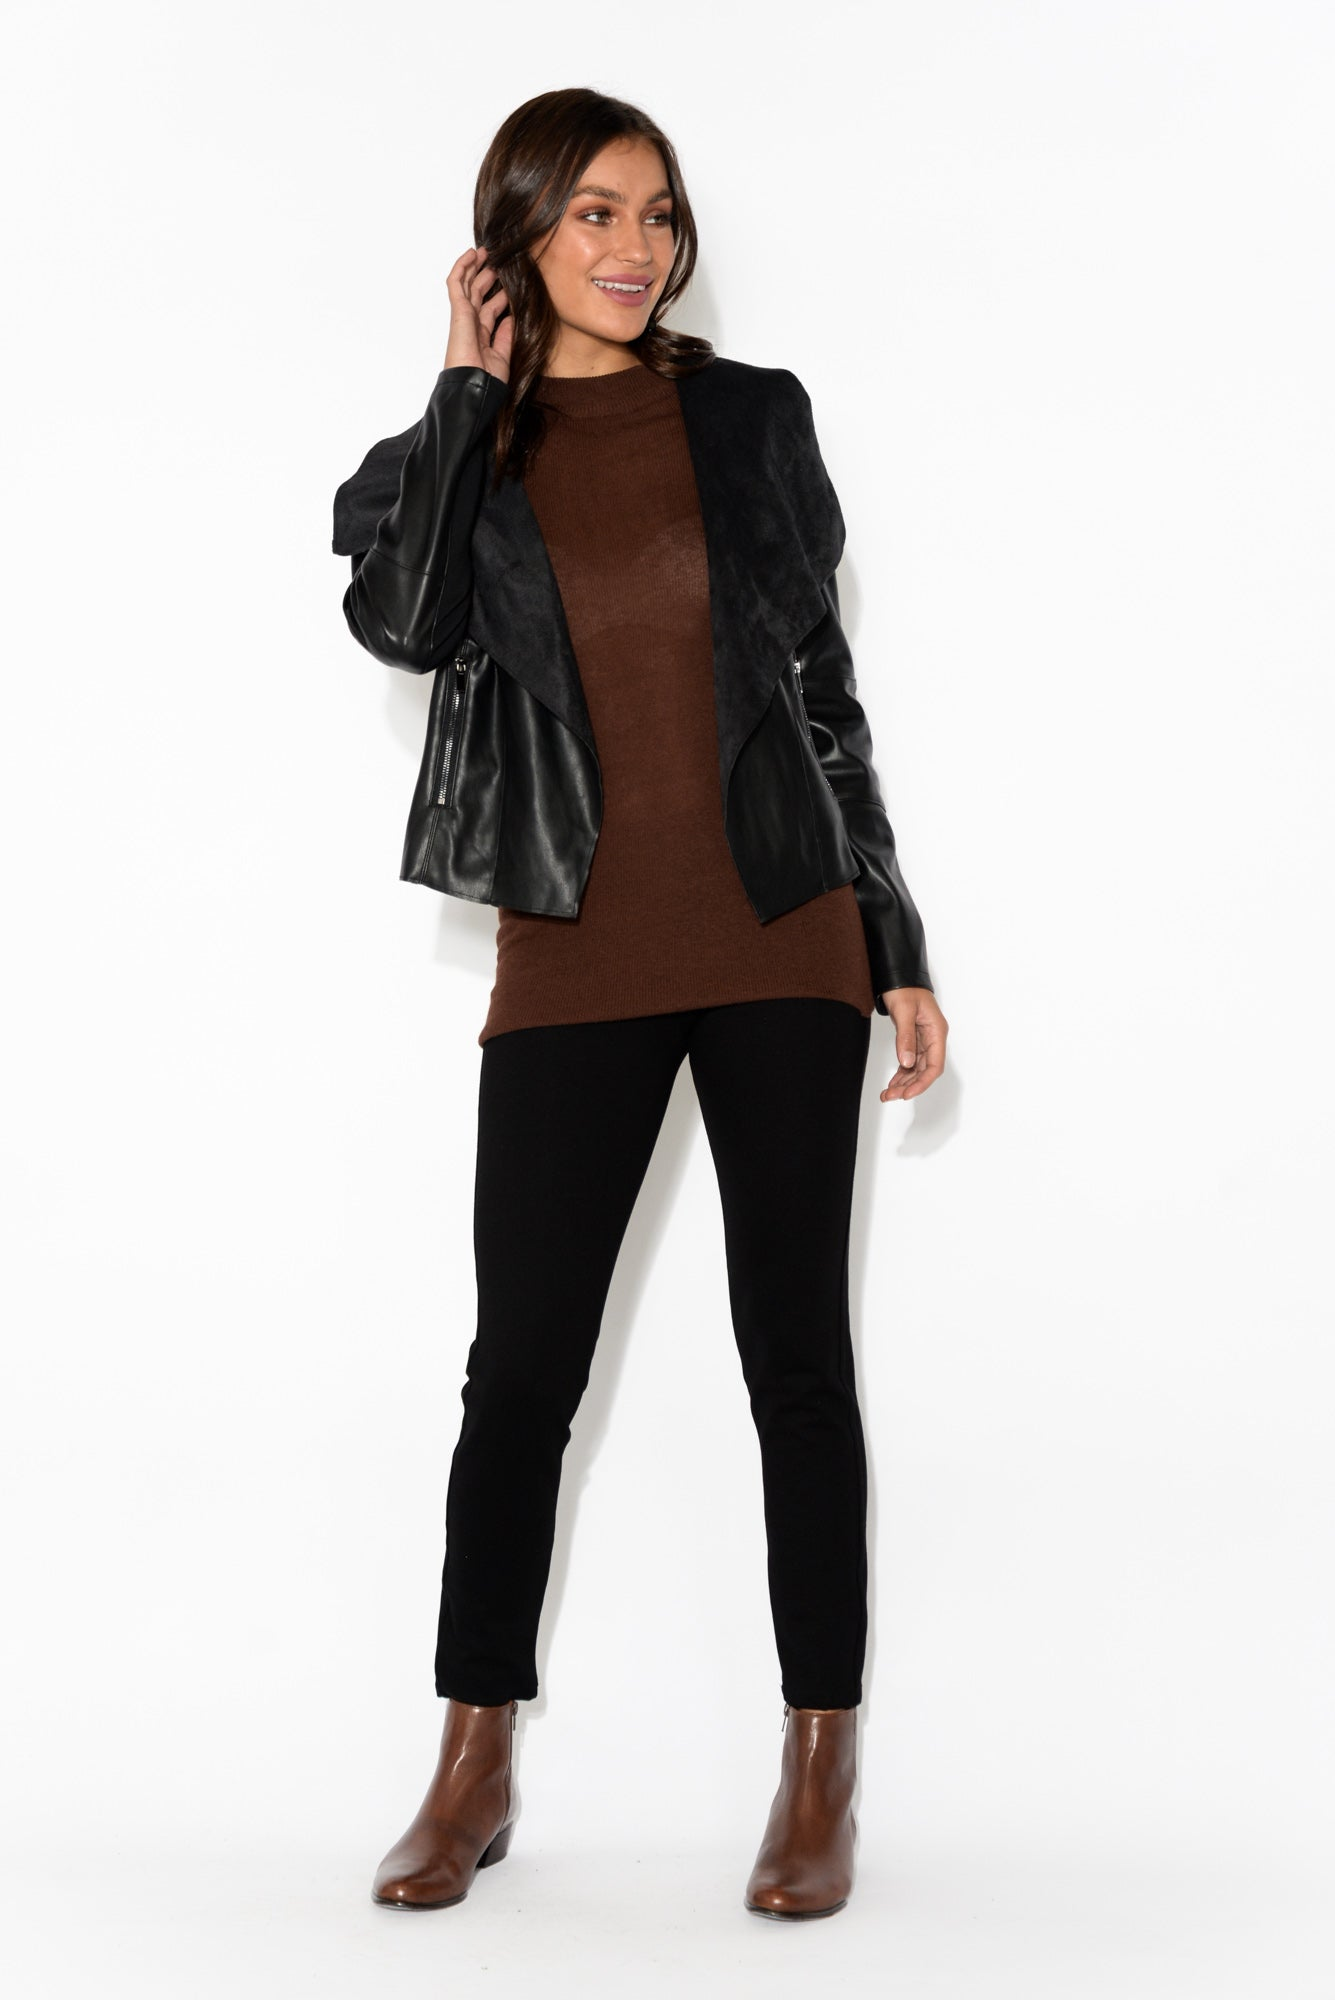 Skyline Rust Knit Sleeved Top